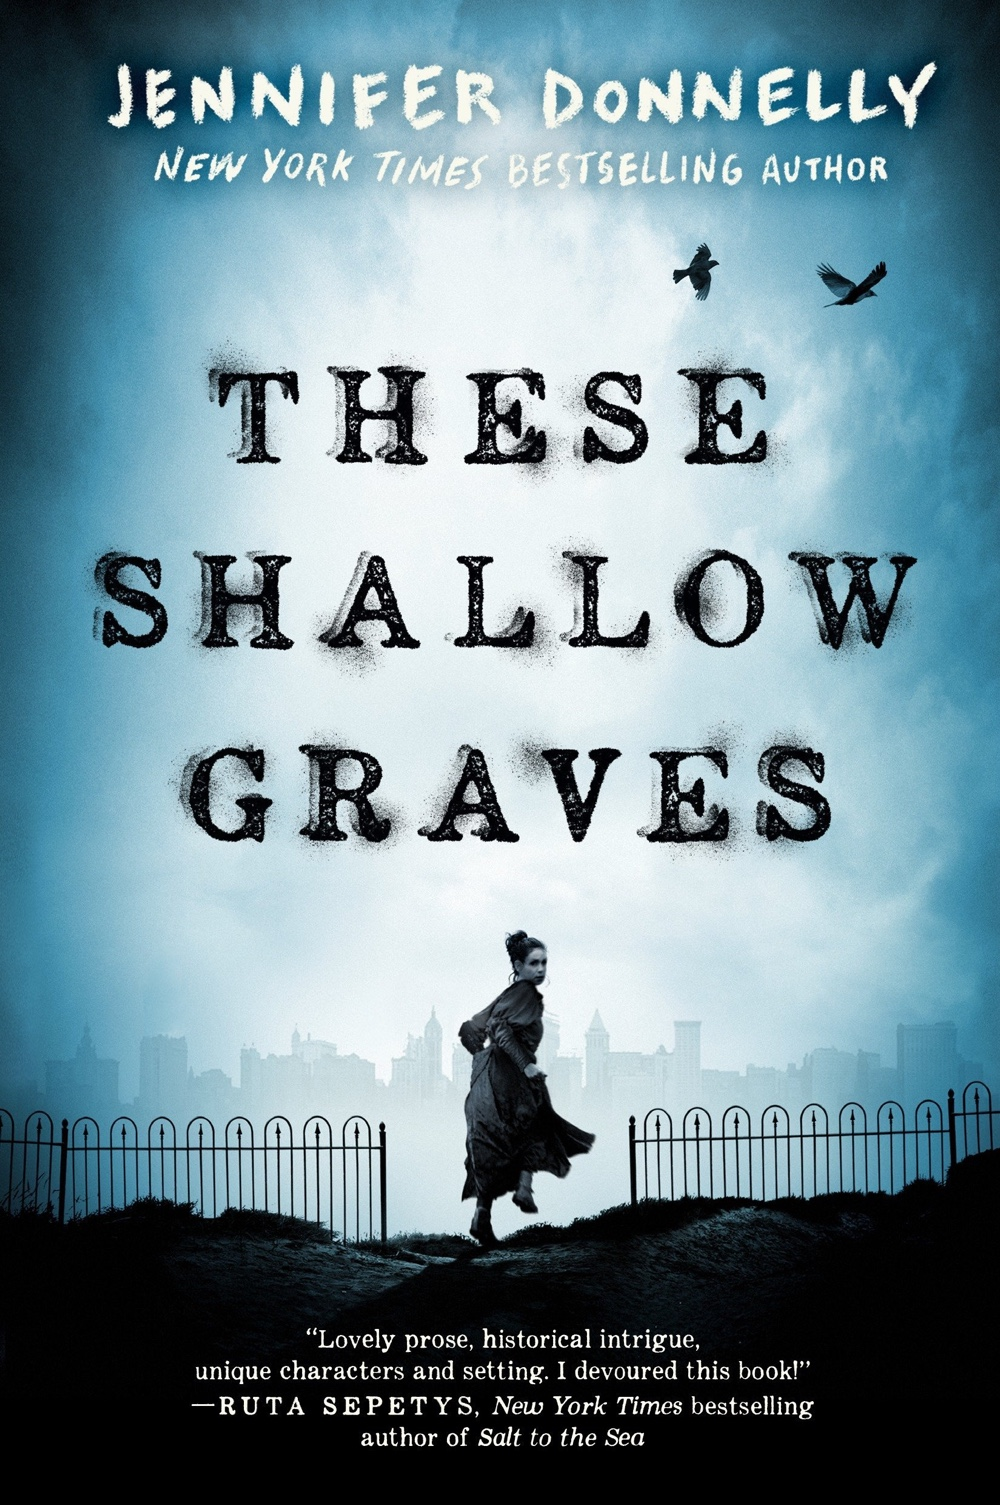 Jennifer Donnelly'sThese Shallow Graves opens up with main character Josephine Montfort exhuming a grave. Then we rewind back in time.